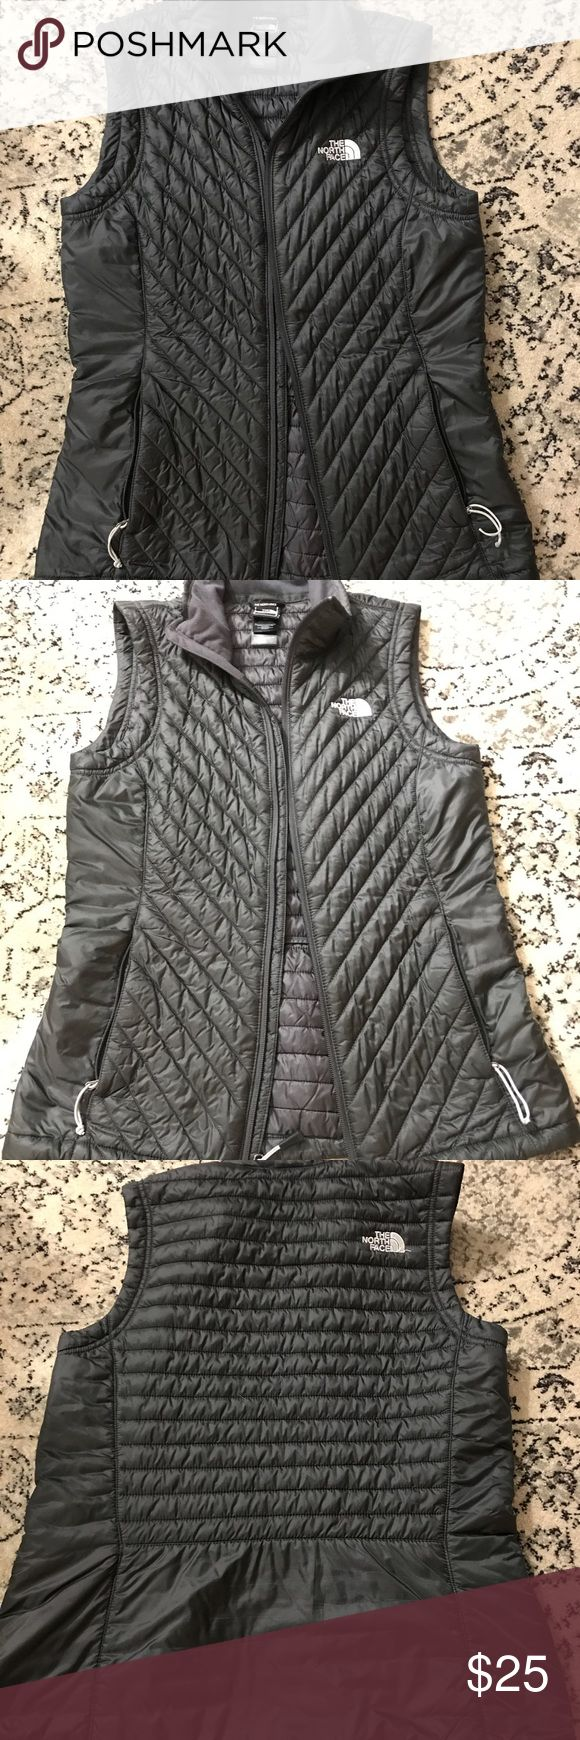 The North Face Vest Black Puffer Vest The North Face Jackets & Coats Vests